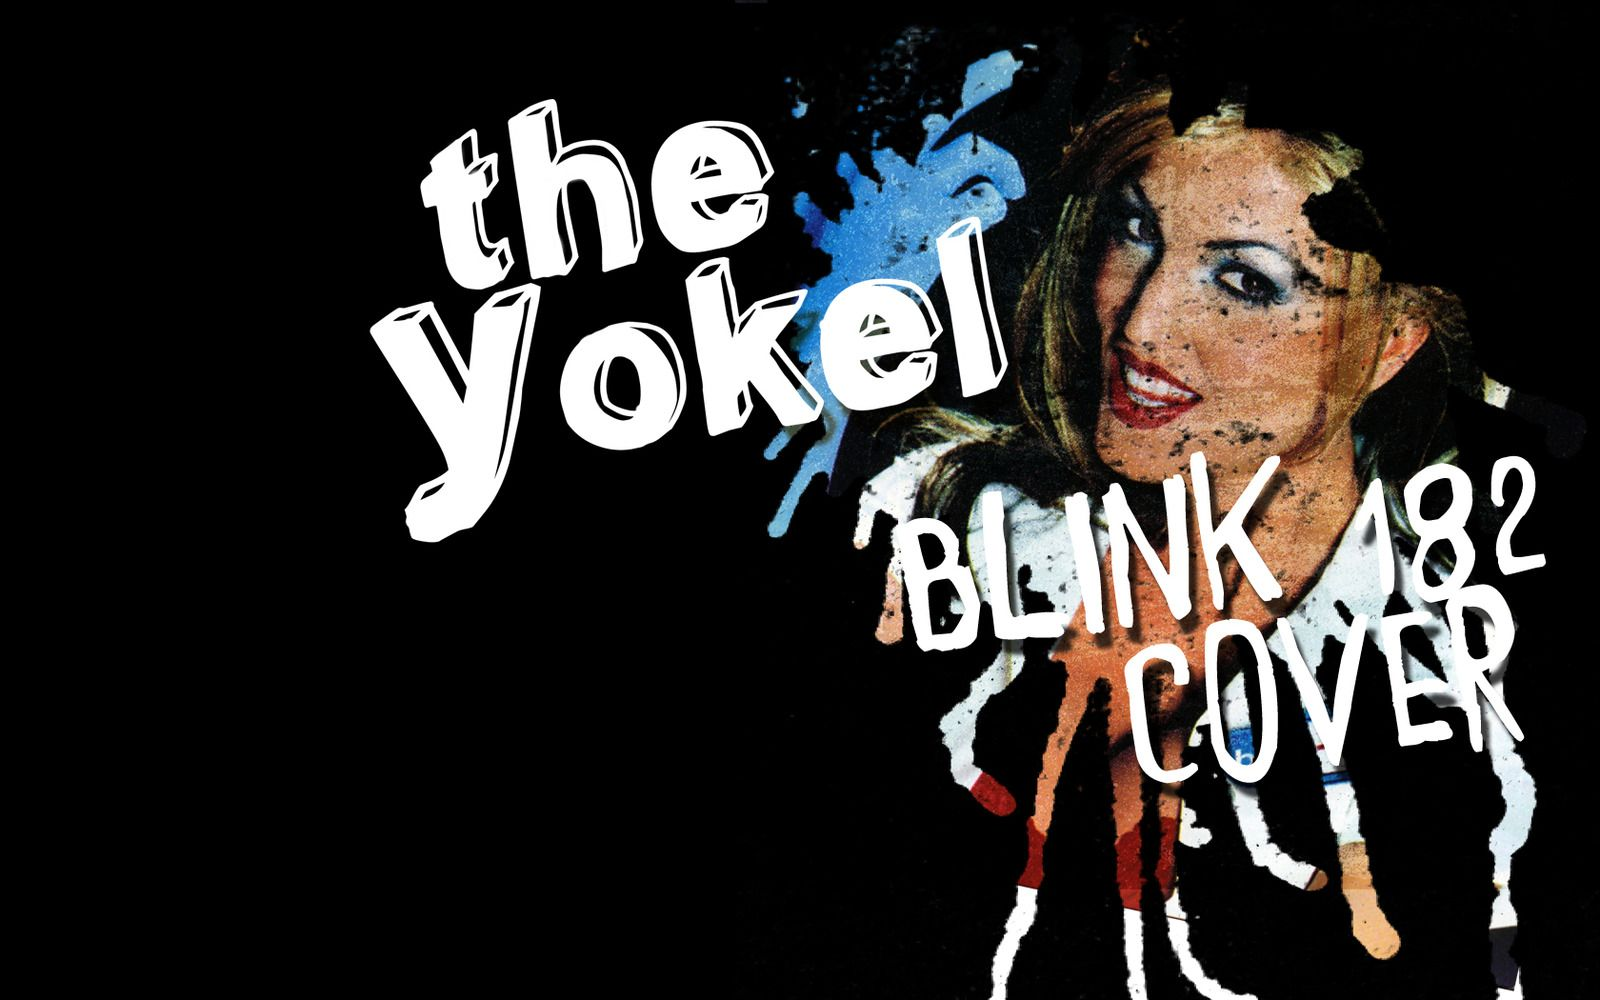 The Yokel - All the Small Things (Blink 182 cover) - Free